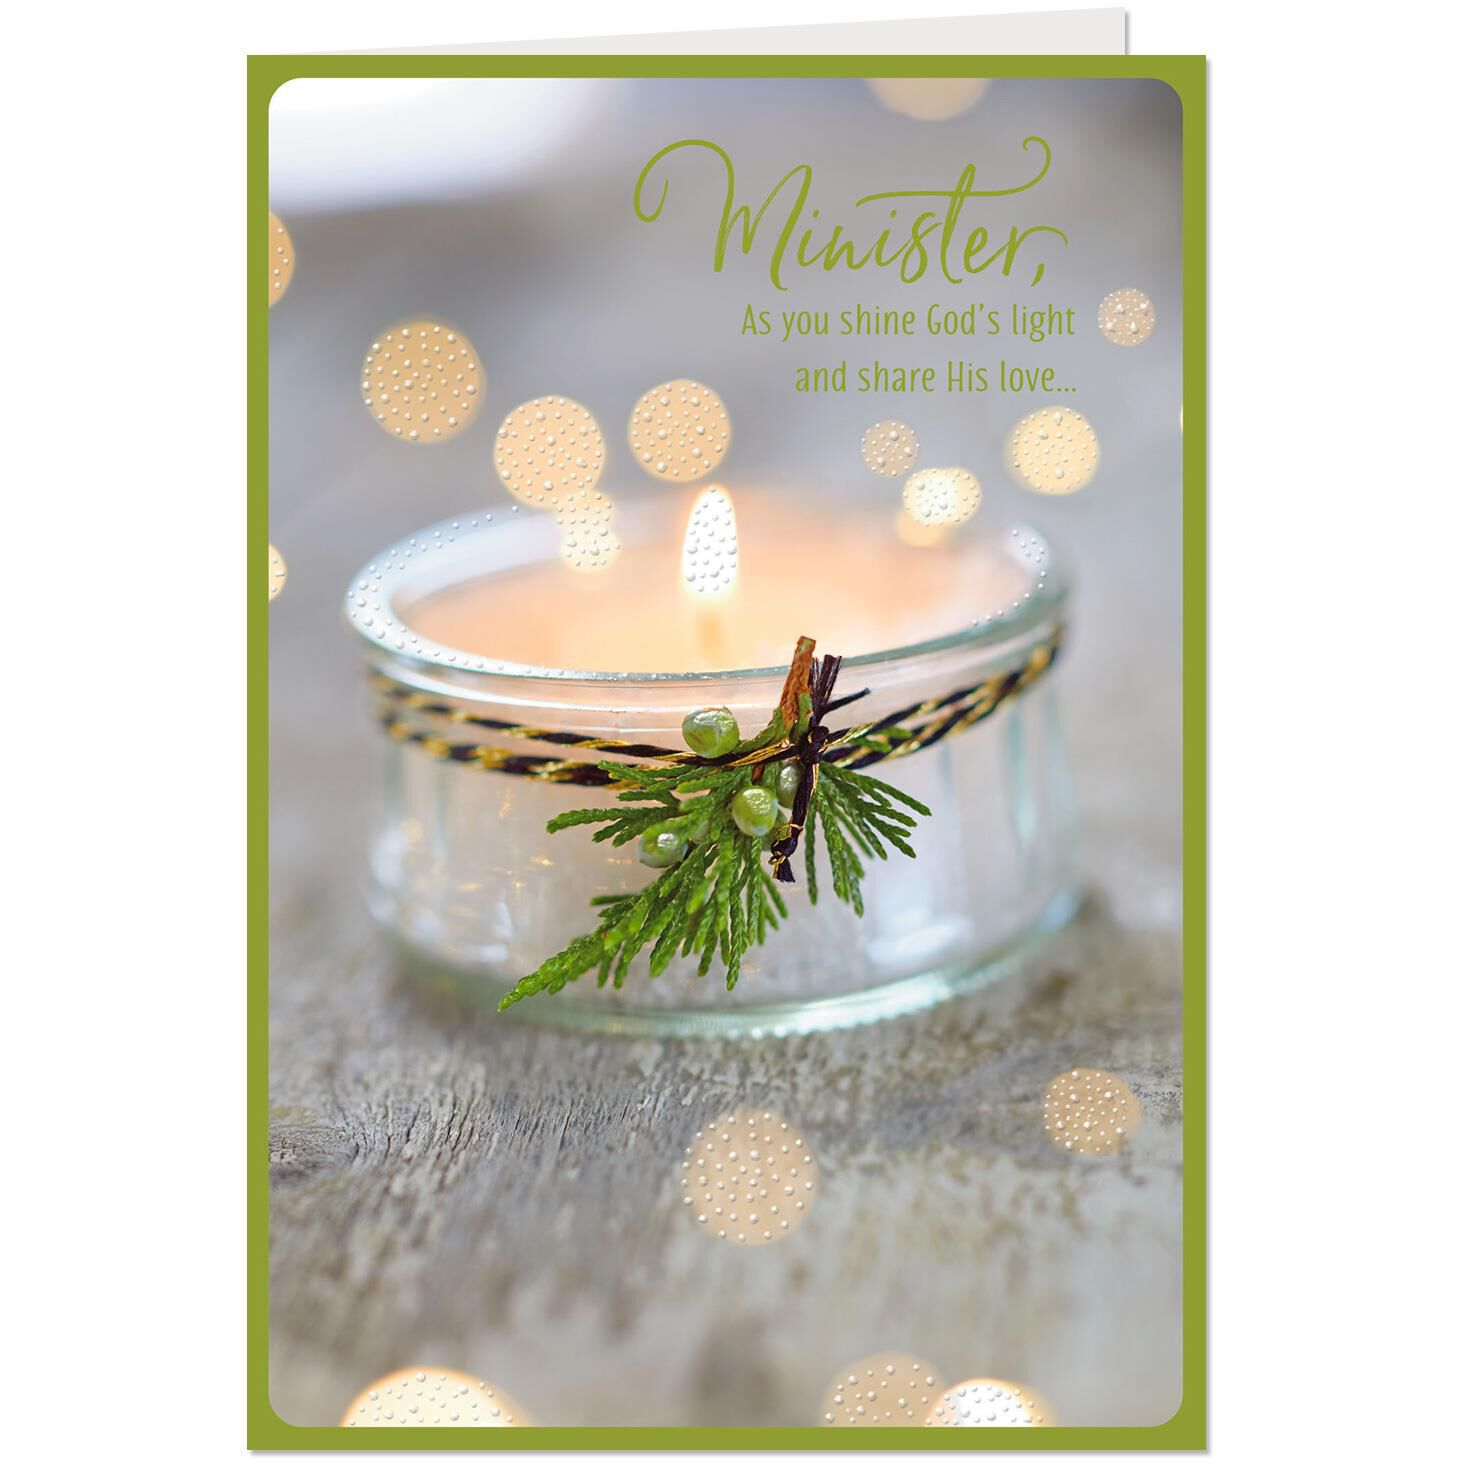 Religious Christmas Images.Your Faithful Example Glowing Candle Religious Christmas Card For Minister